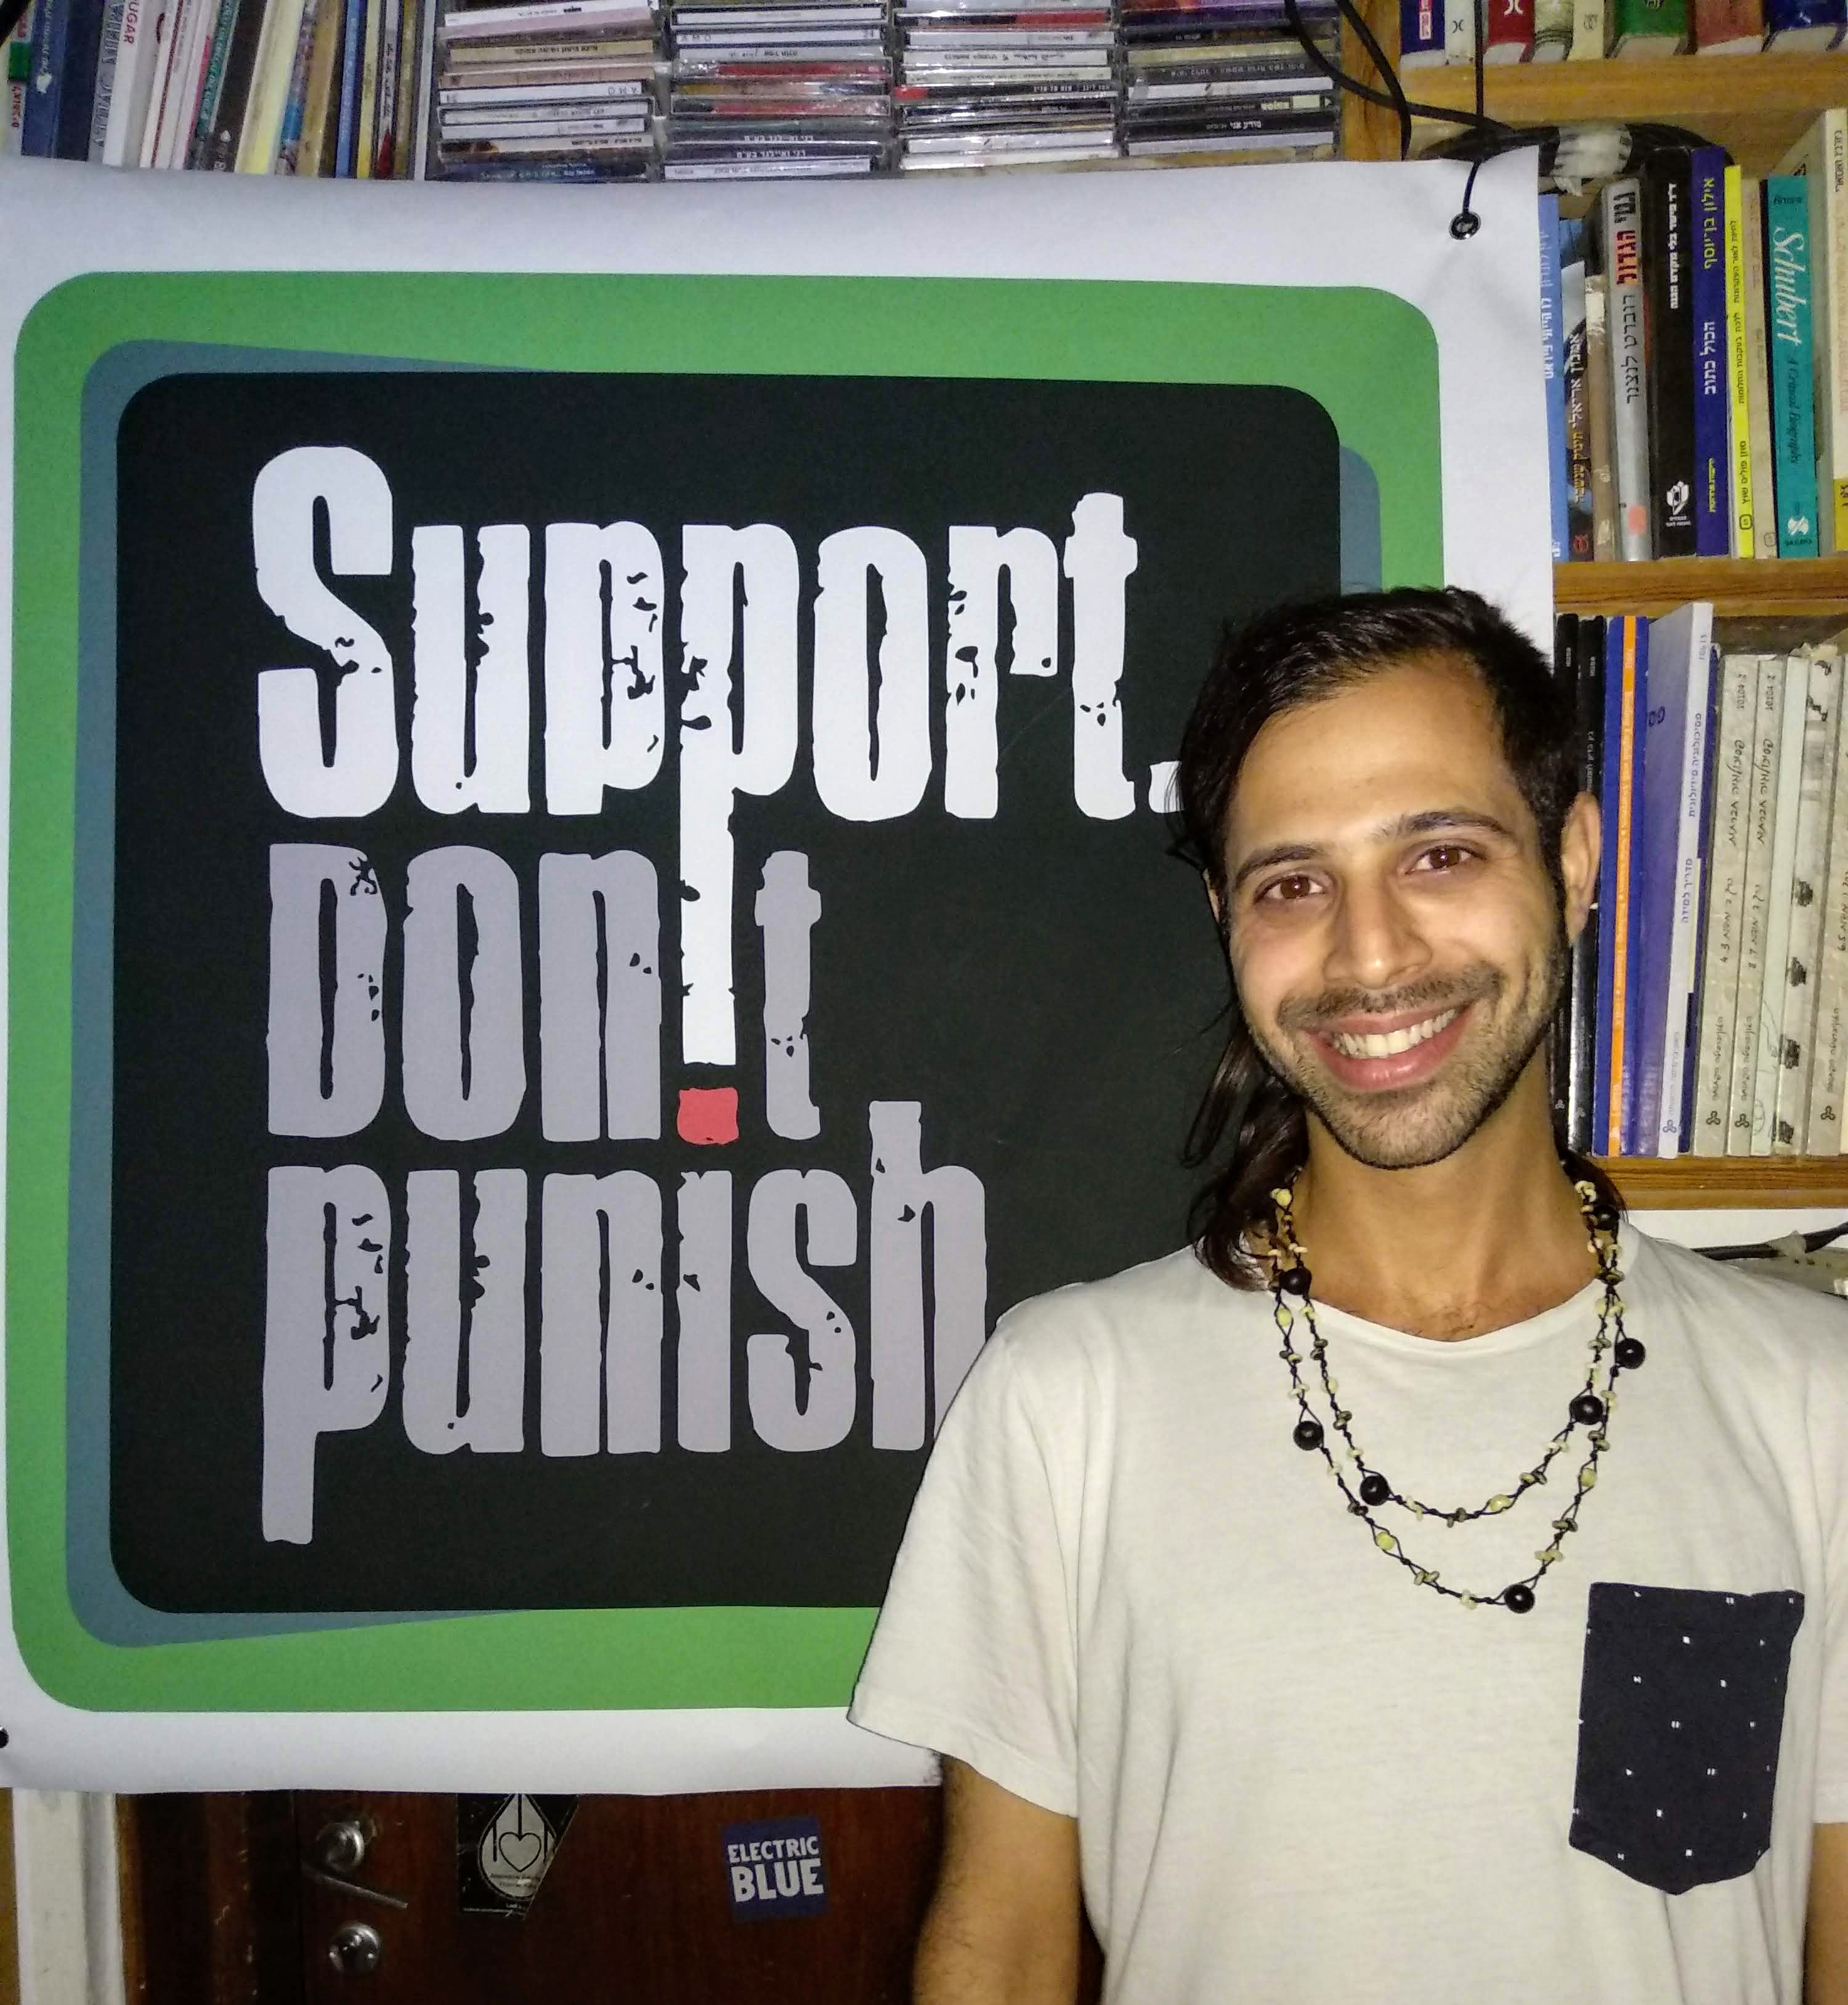 Effie from SSDP Israel standing in front of a Support Don't Punish poster.